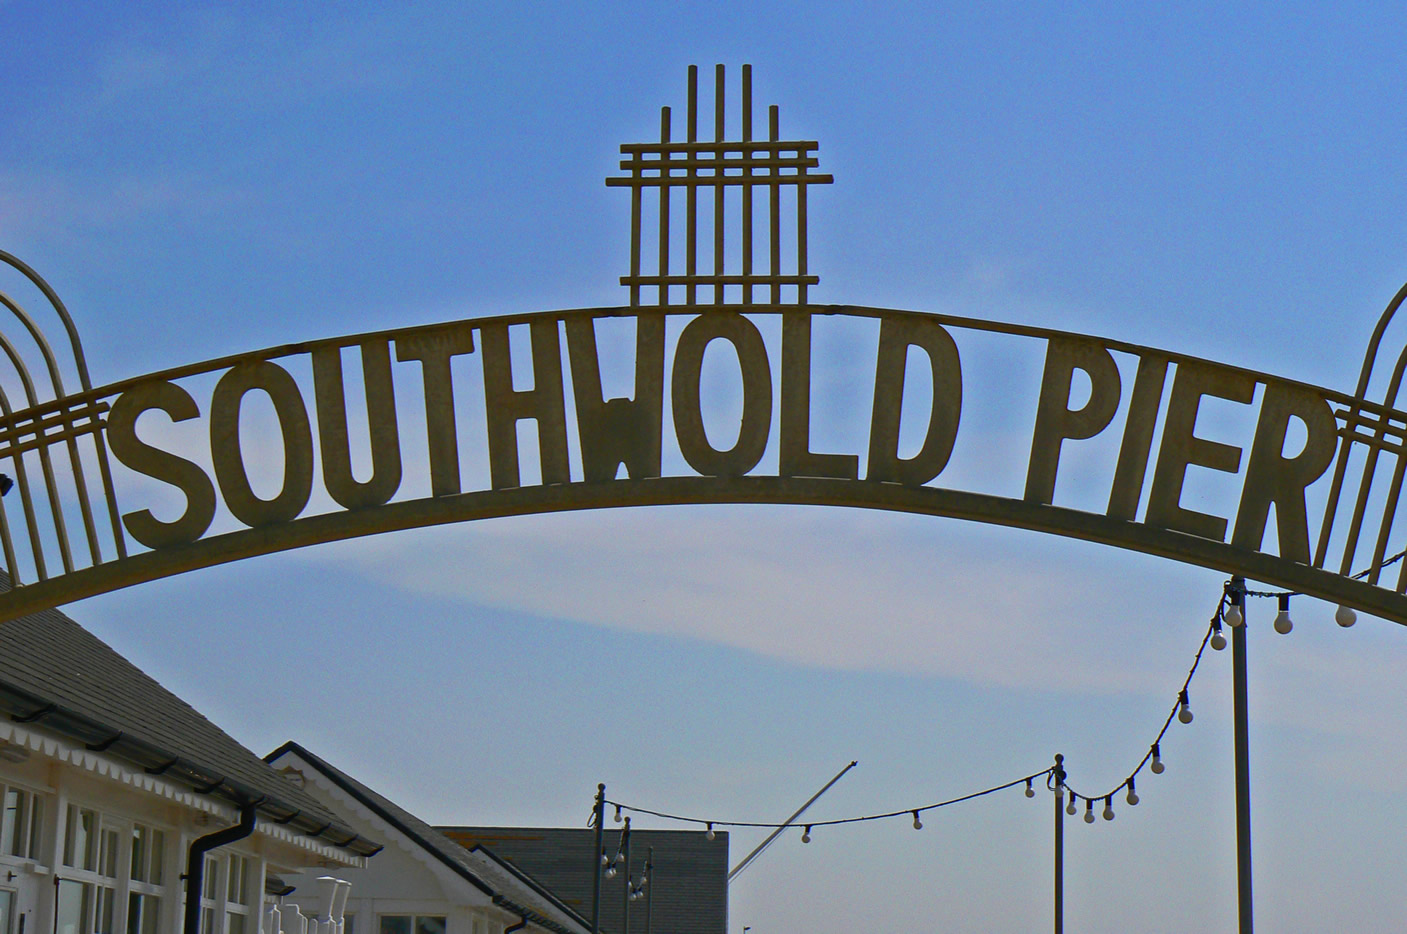 Southwold Photo Diary - 30th March 2008 - www.simplonpc.co.uk